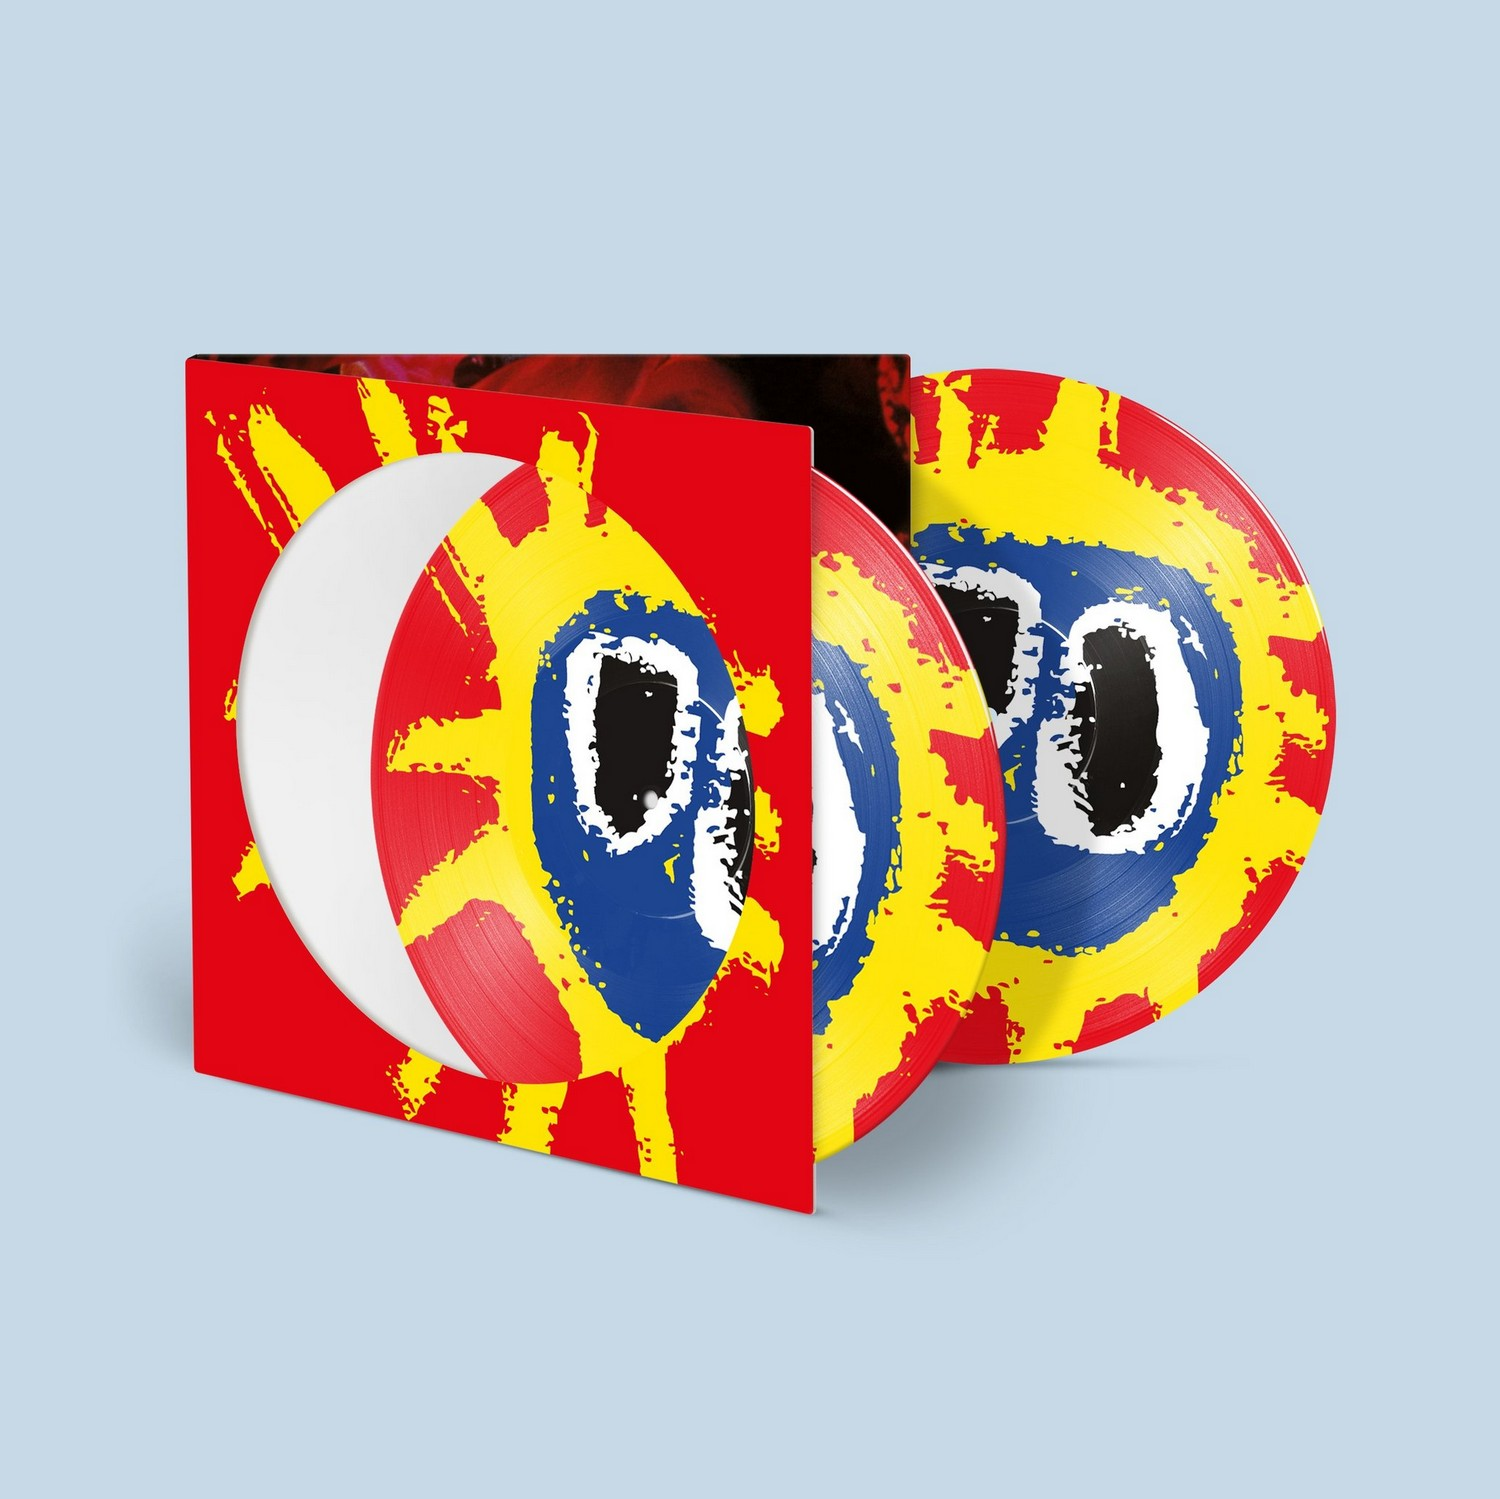 screamadelica 12 picture disc 1627385655